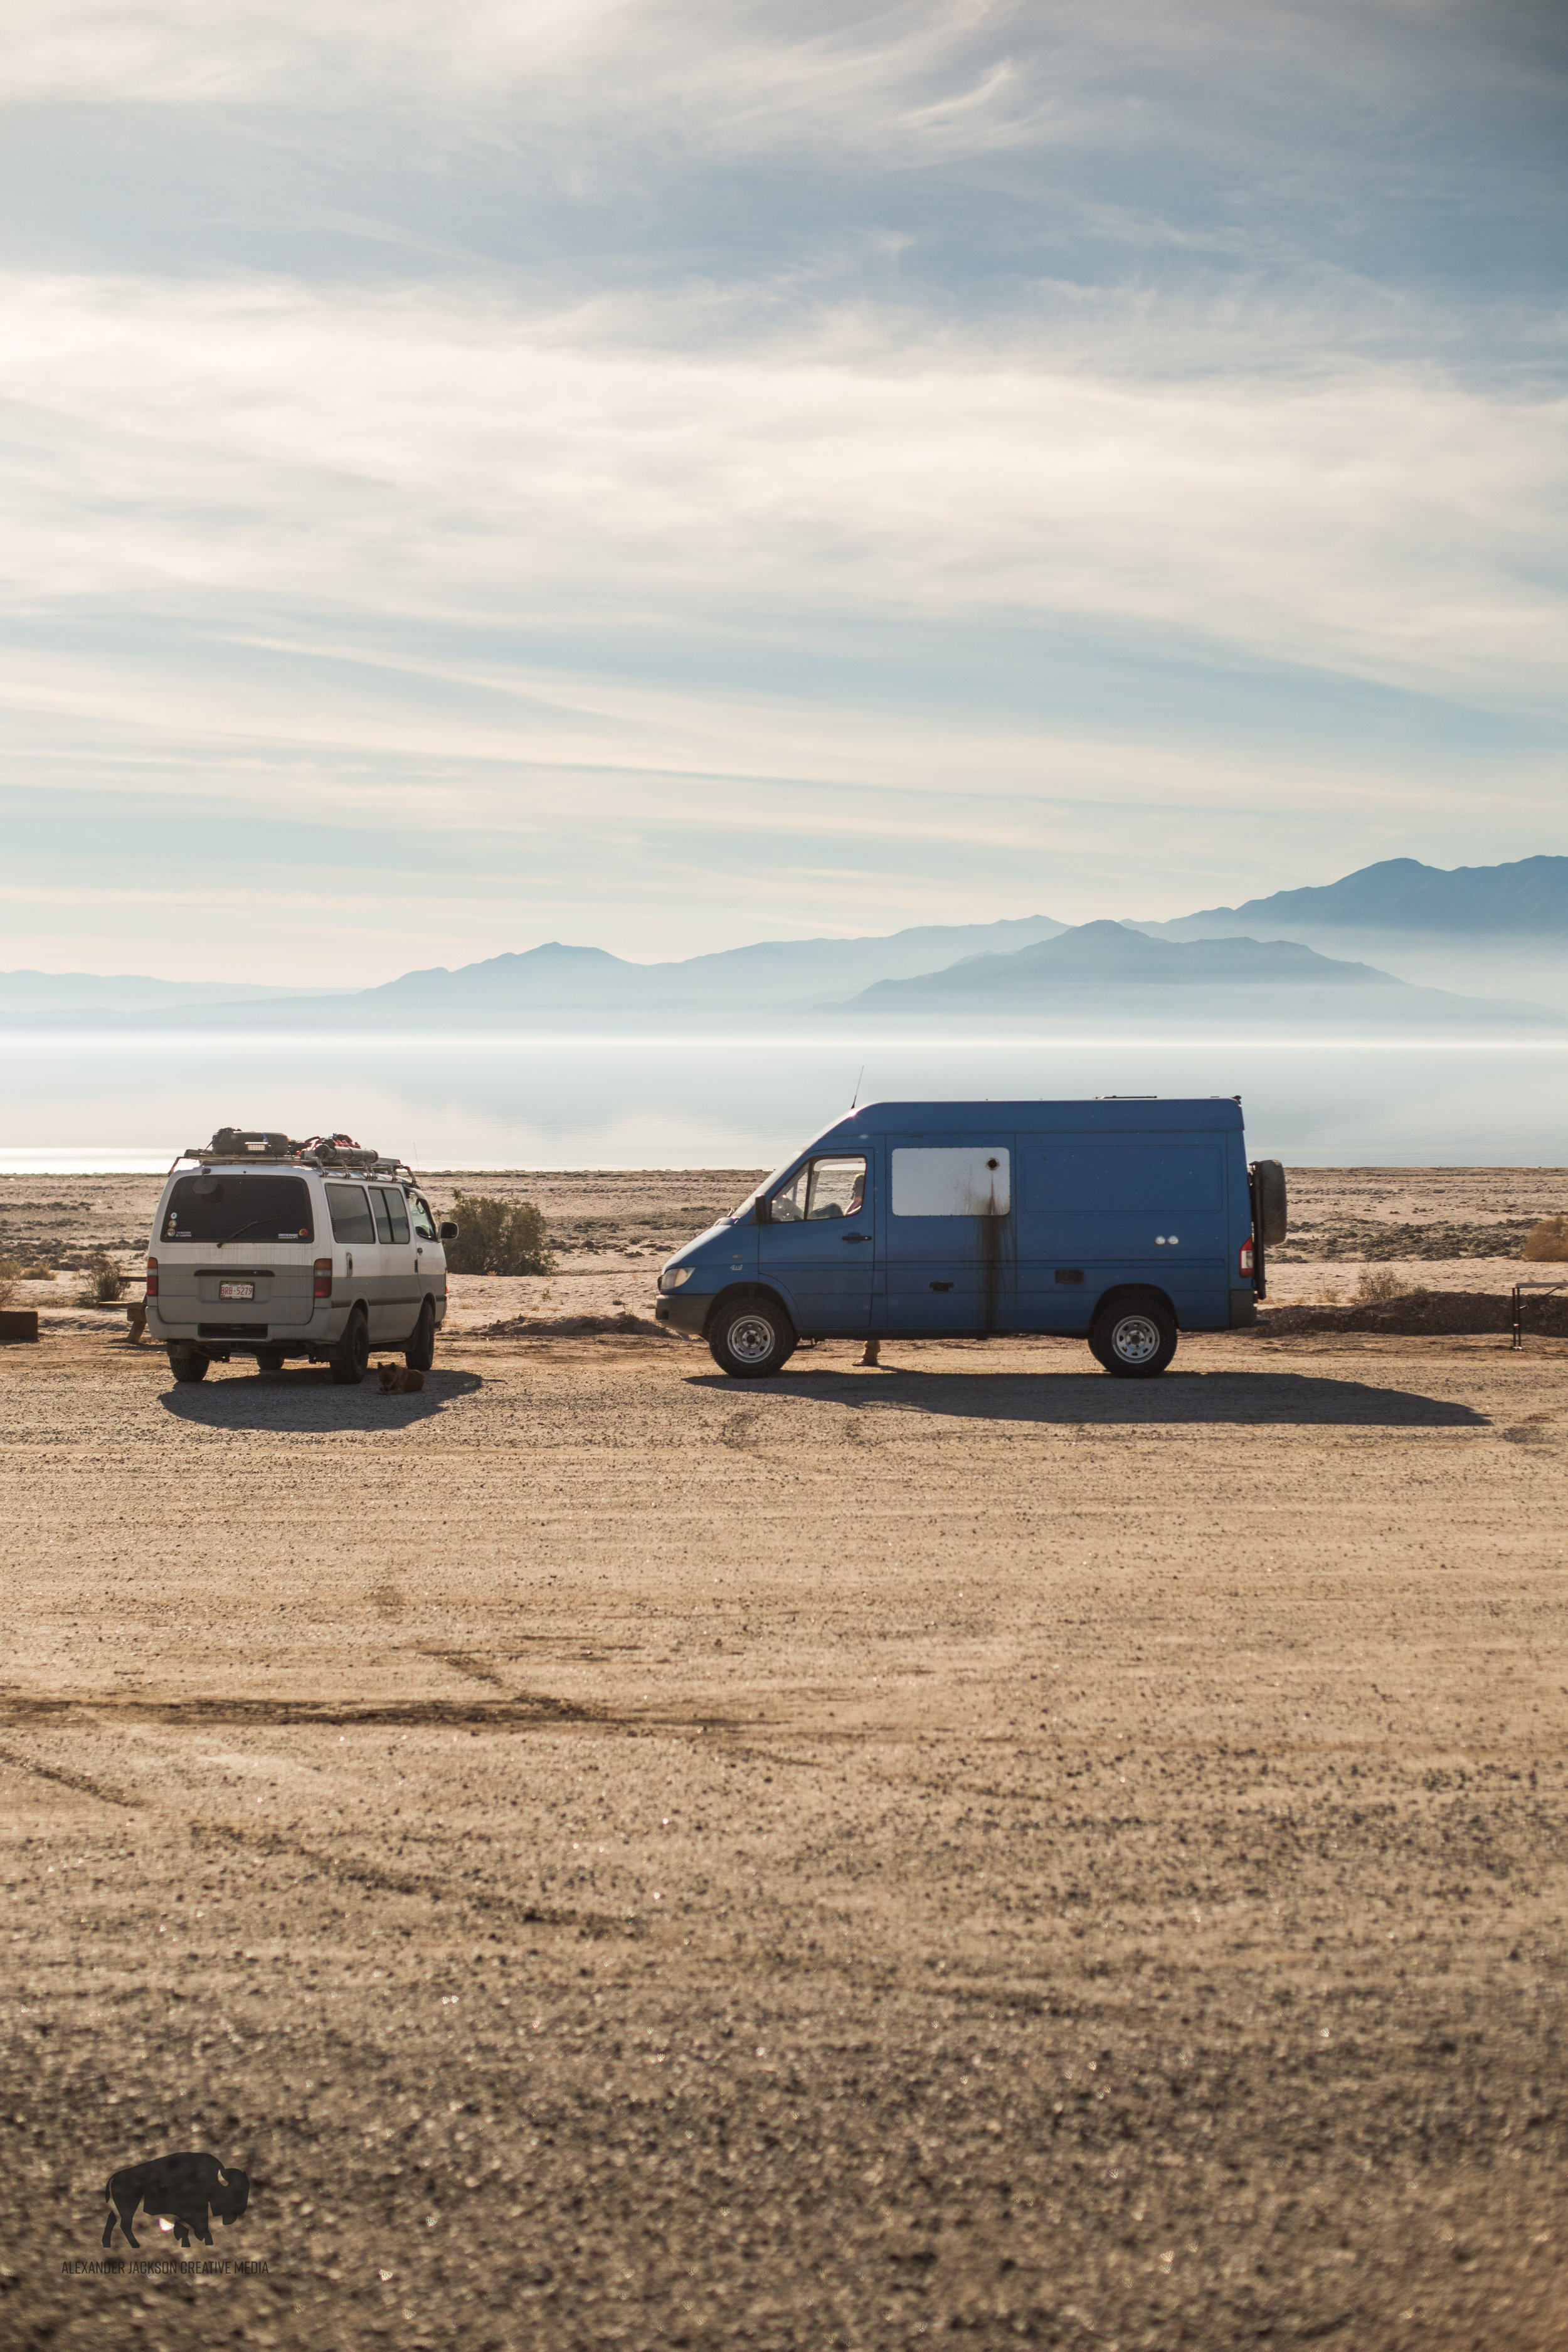 Making a quick stop at the Salton Sea.